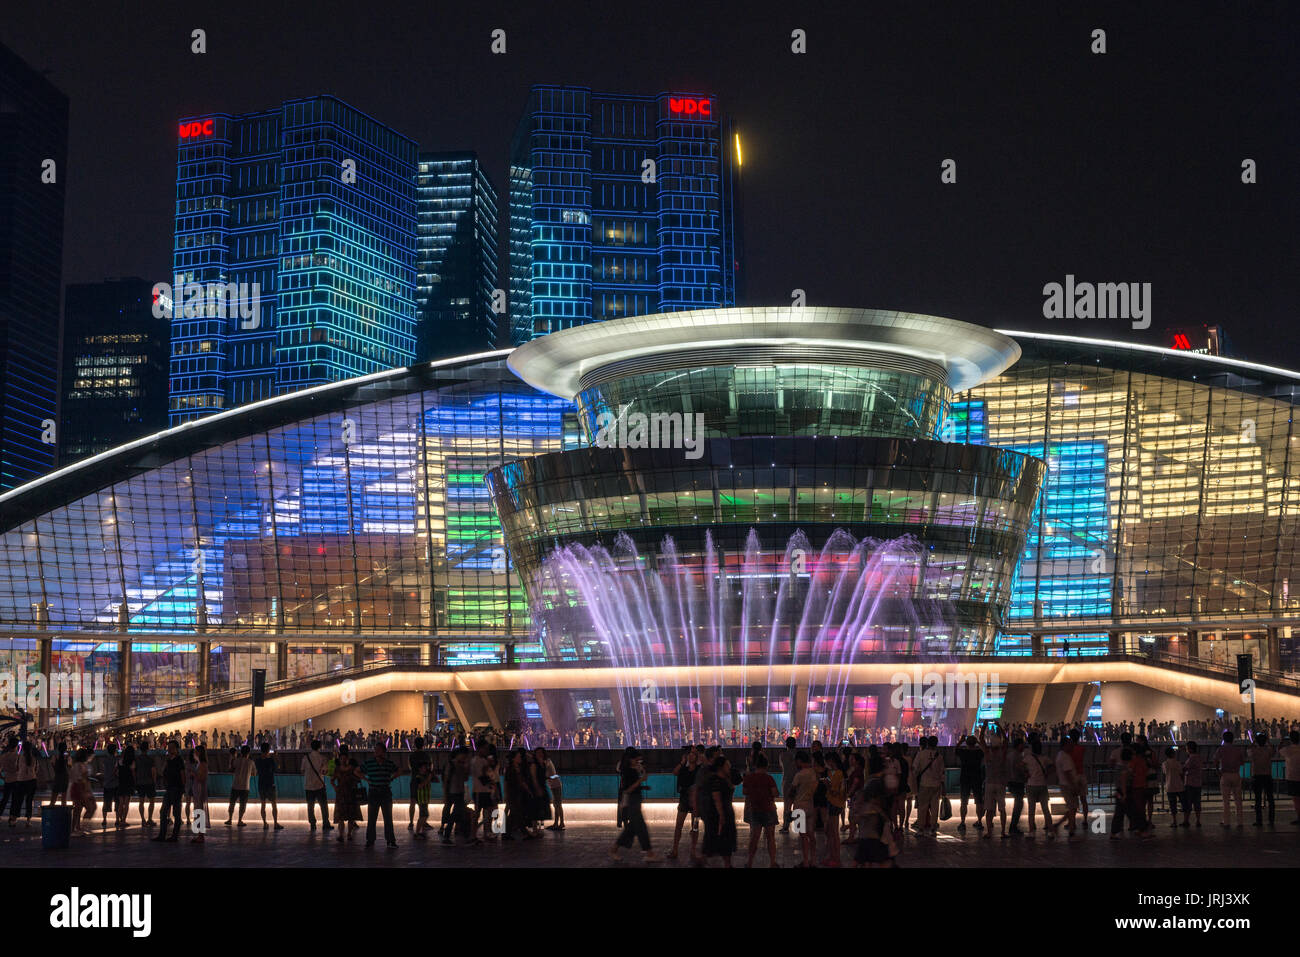 Hangzhou china night lights and modern architecture the famous grand theatre is unique and lighted with memorizing designs and musical fountain show